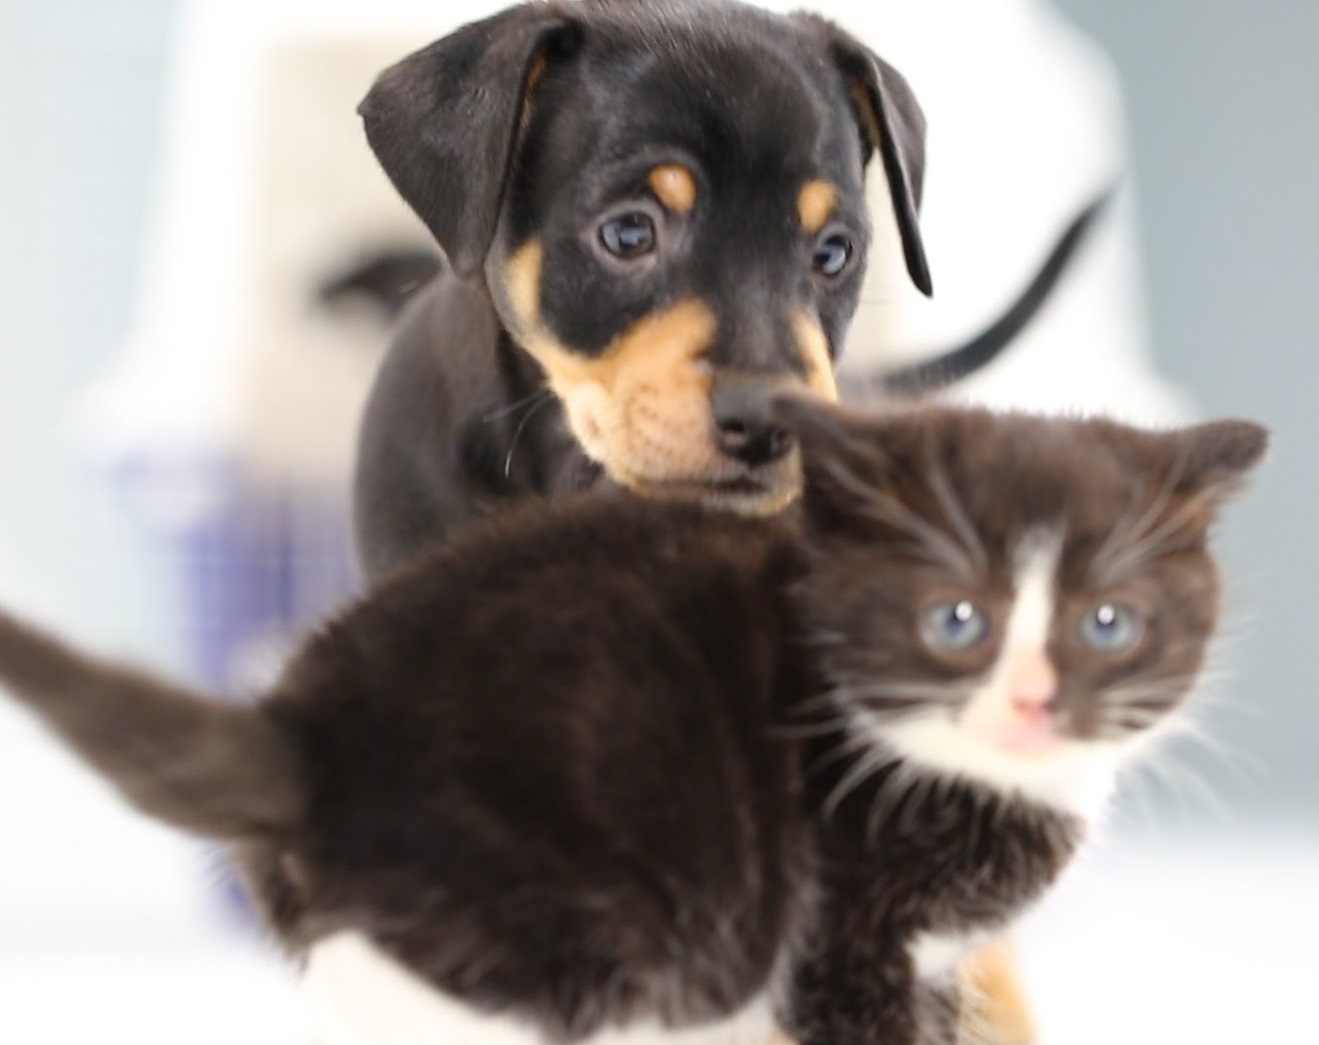 Kitten Meet Puppies For The First Time